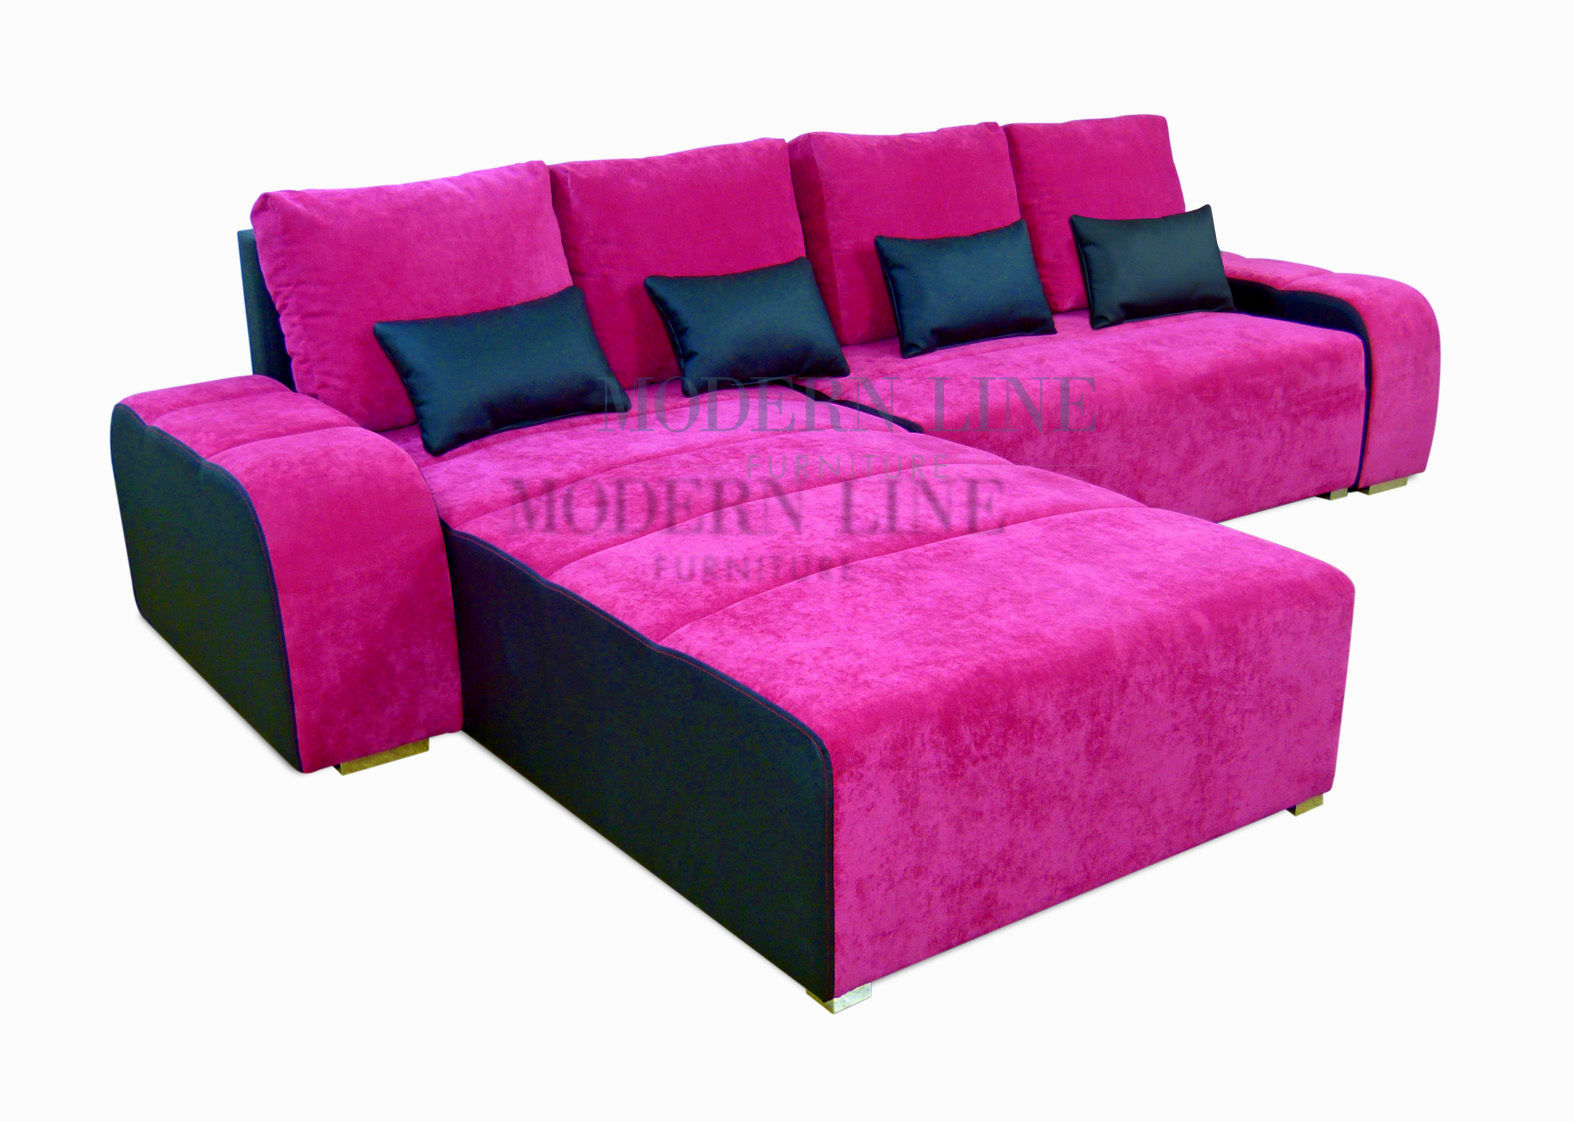 elegant sears sleeper sofa image-Sensational Sears Sleeper sofa Photograph